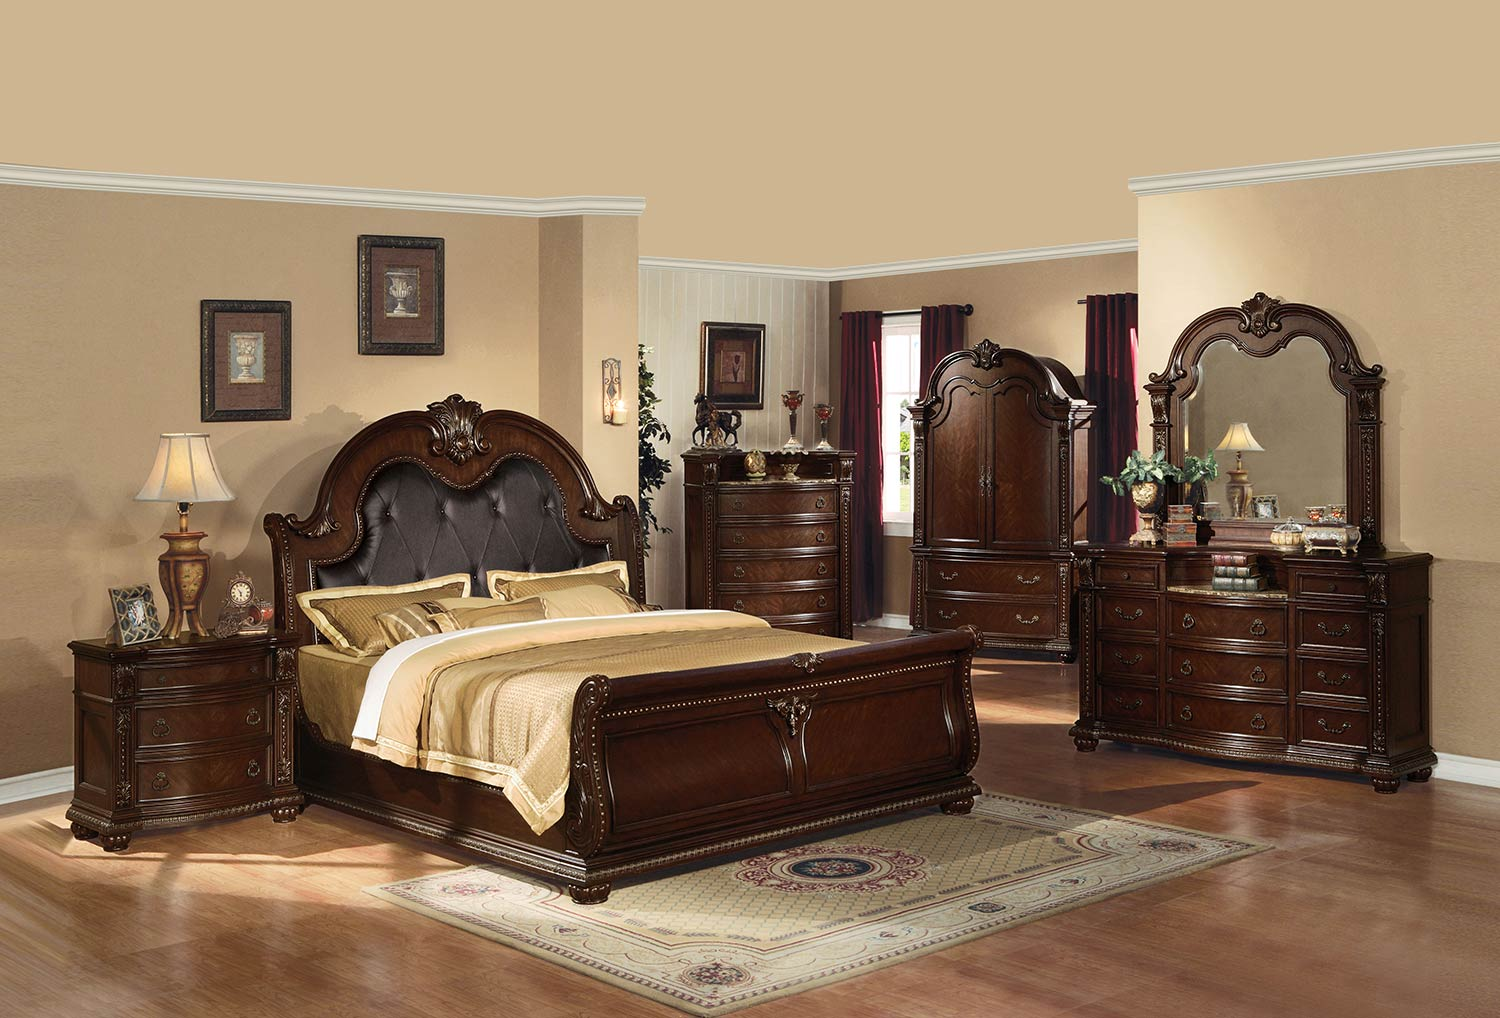 Acme Anondale Bedroom Set - Espresso Vinyl/Cherry